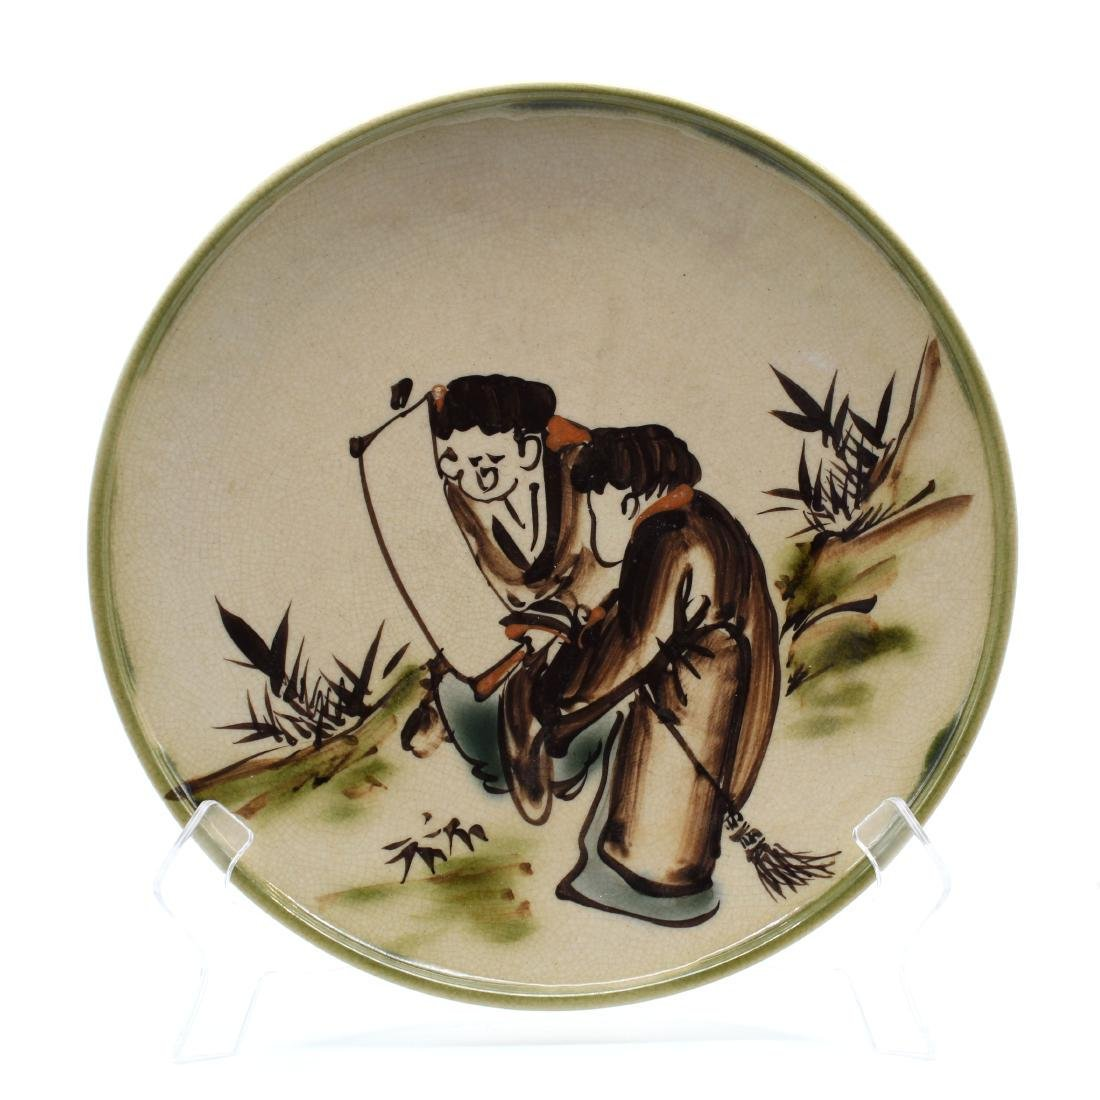 (2) Antique Porcelain Japanese Swatow Styled Plates - 5